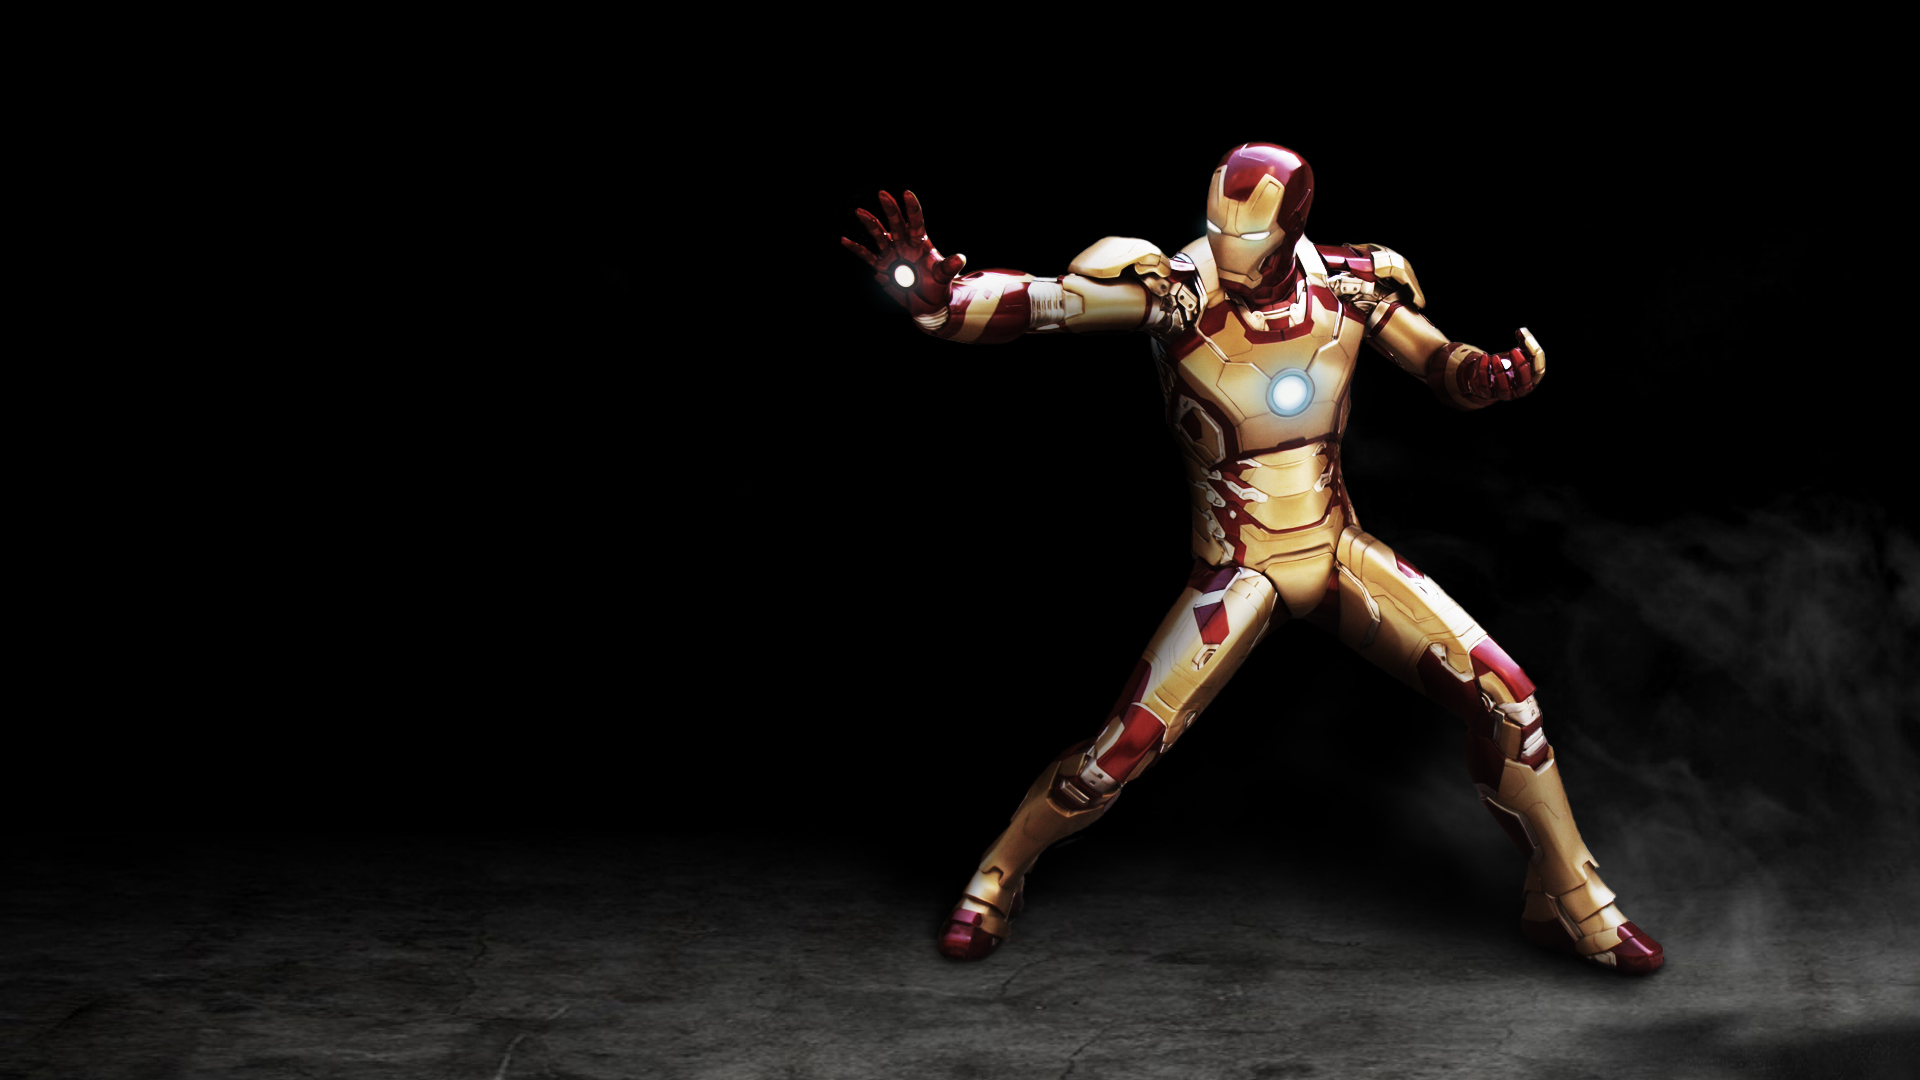 ironman wallpaper hd